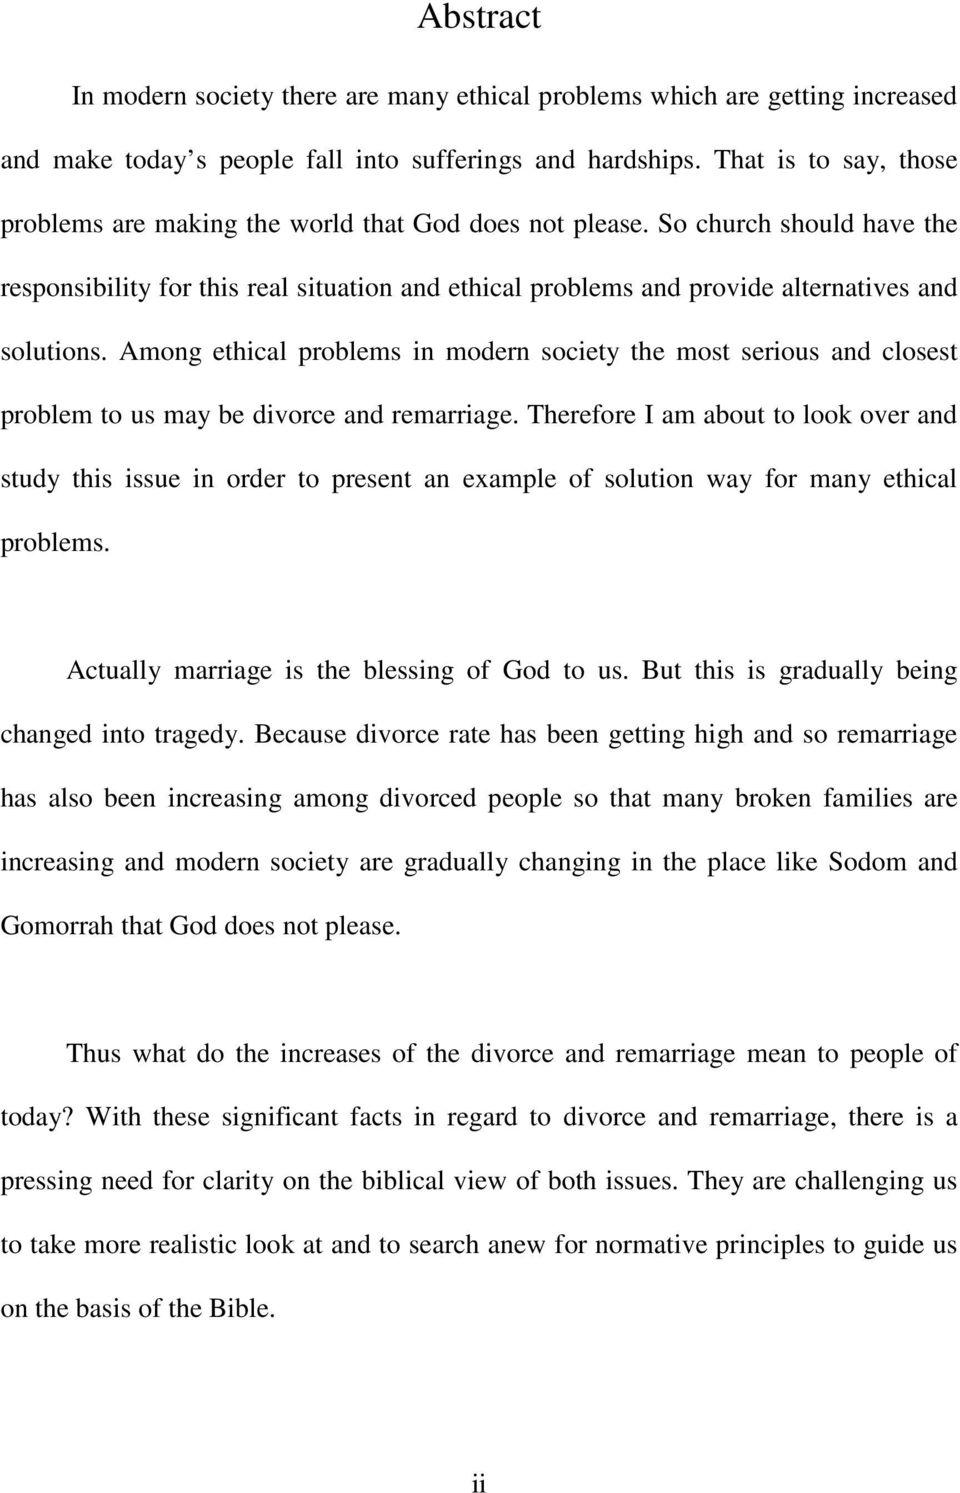 The Study of Ethical Issues and Solutions in the Modern Society - PDF